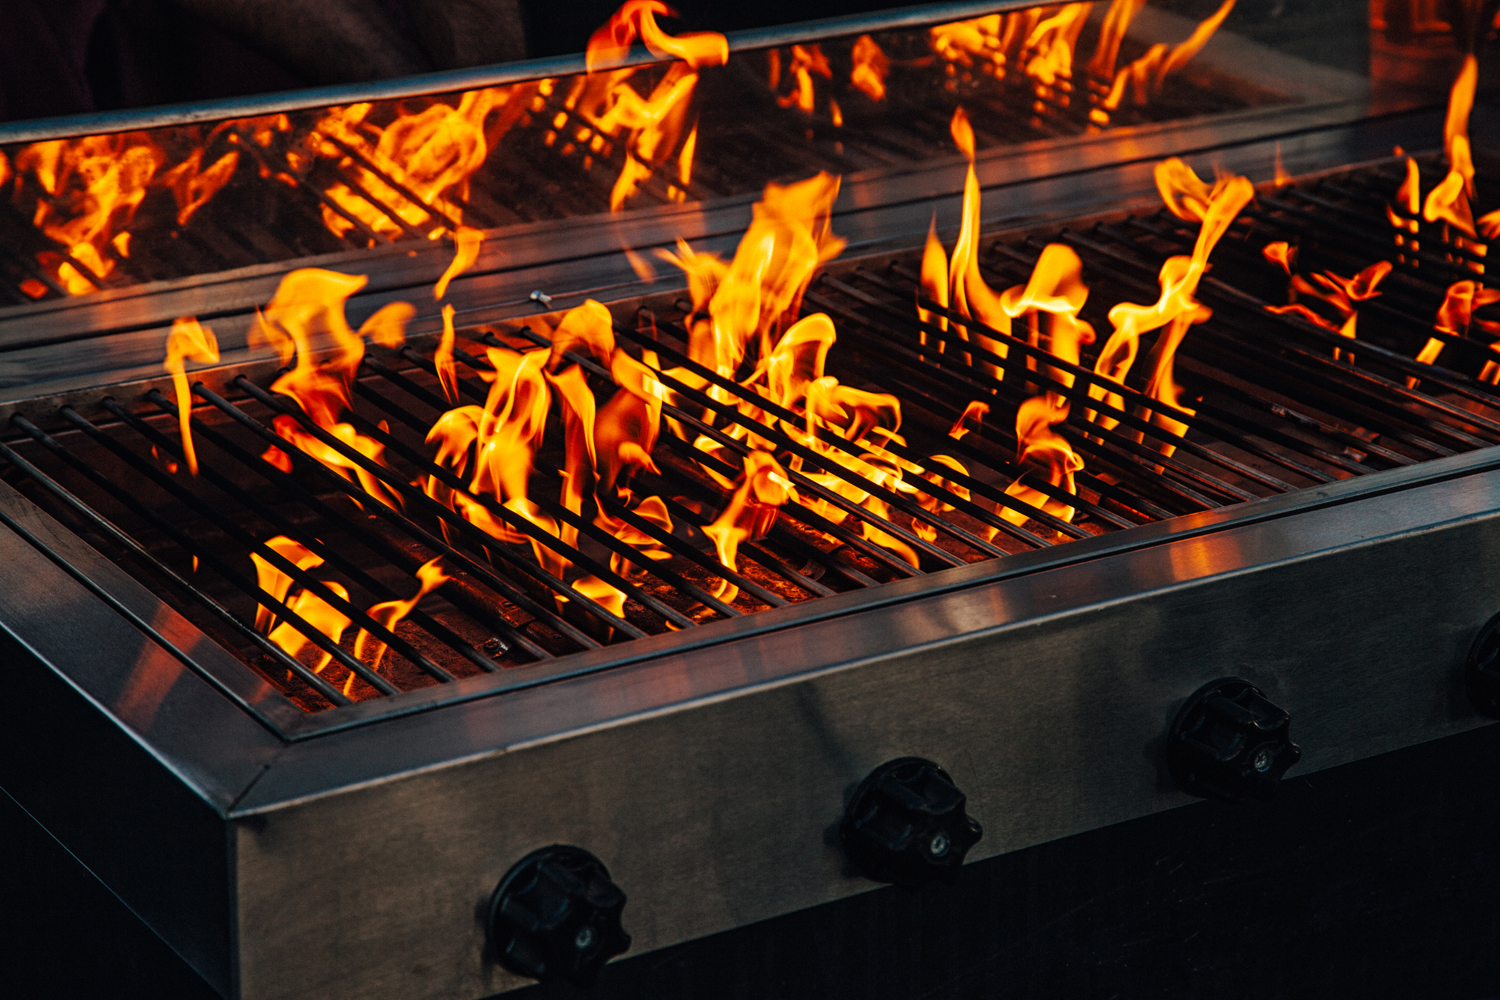 Hot Barbeque gas gril with bright yellow flames angburning coals. Working with music sound equalizer system.